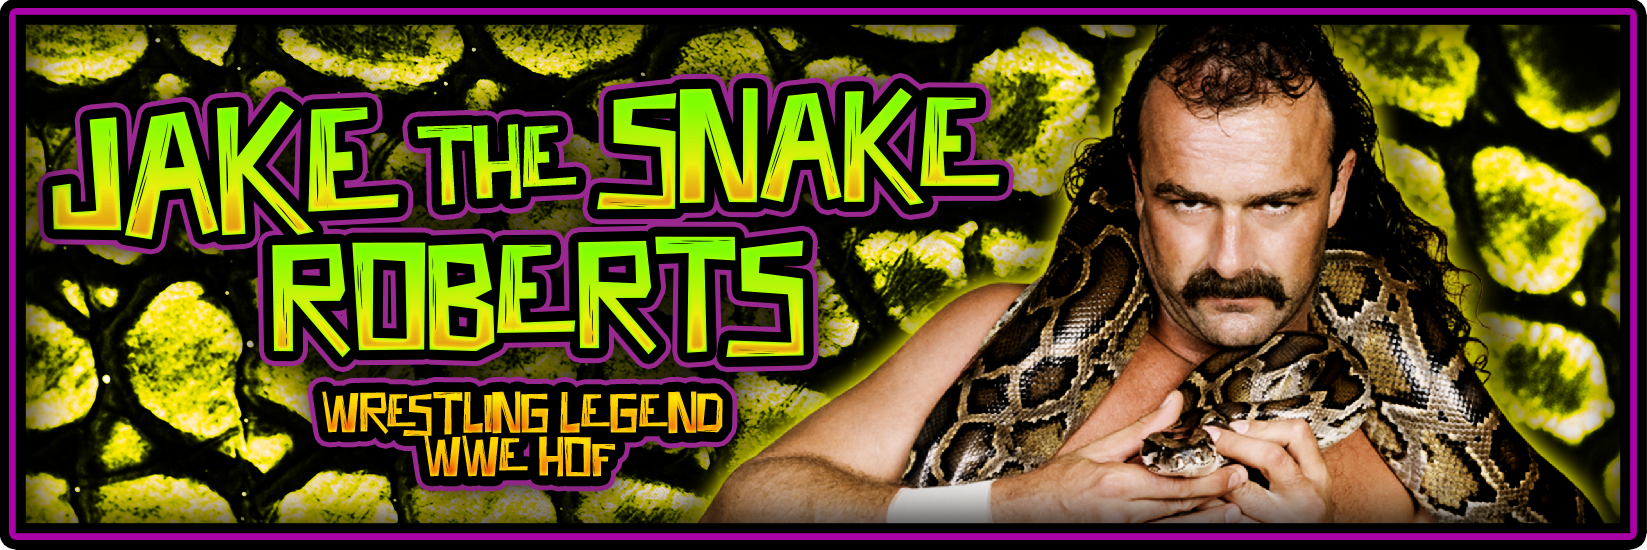 Astronomicon  2 Jake The Snake Banner.png